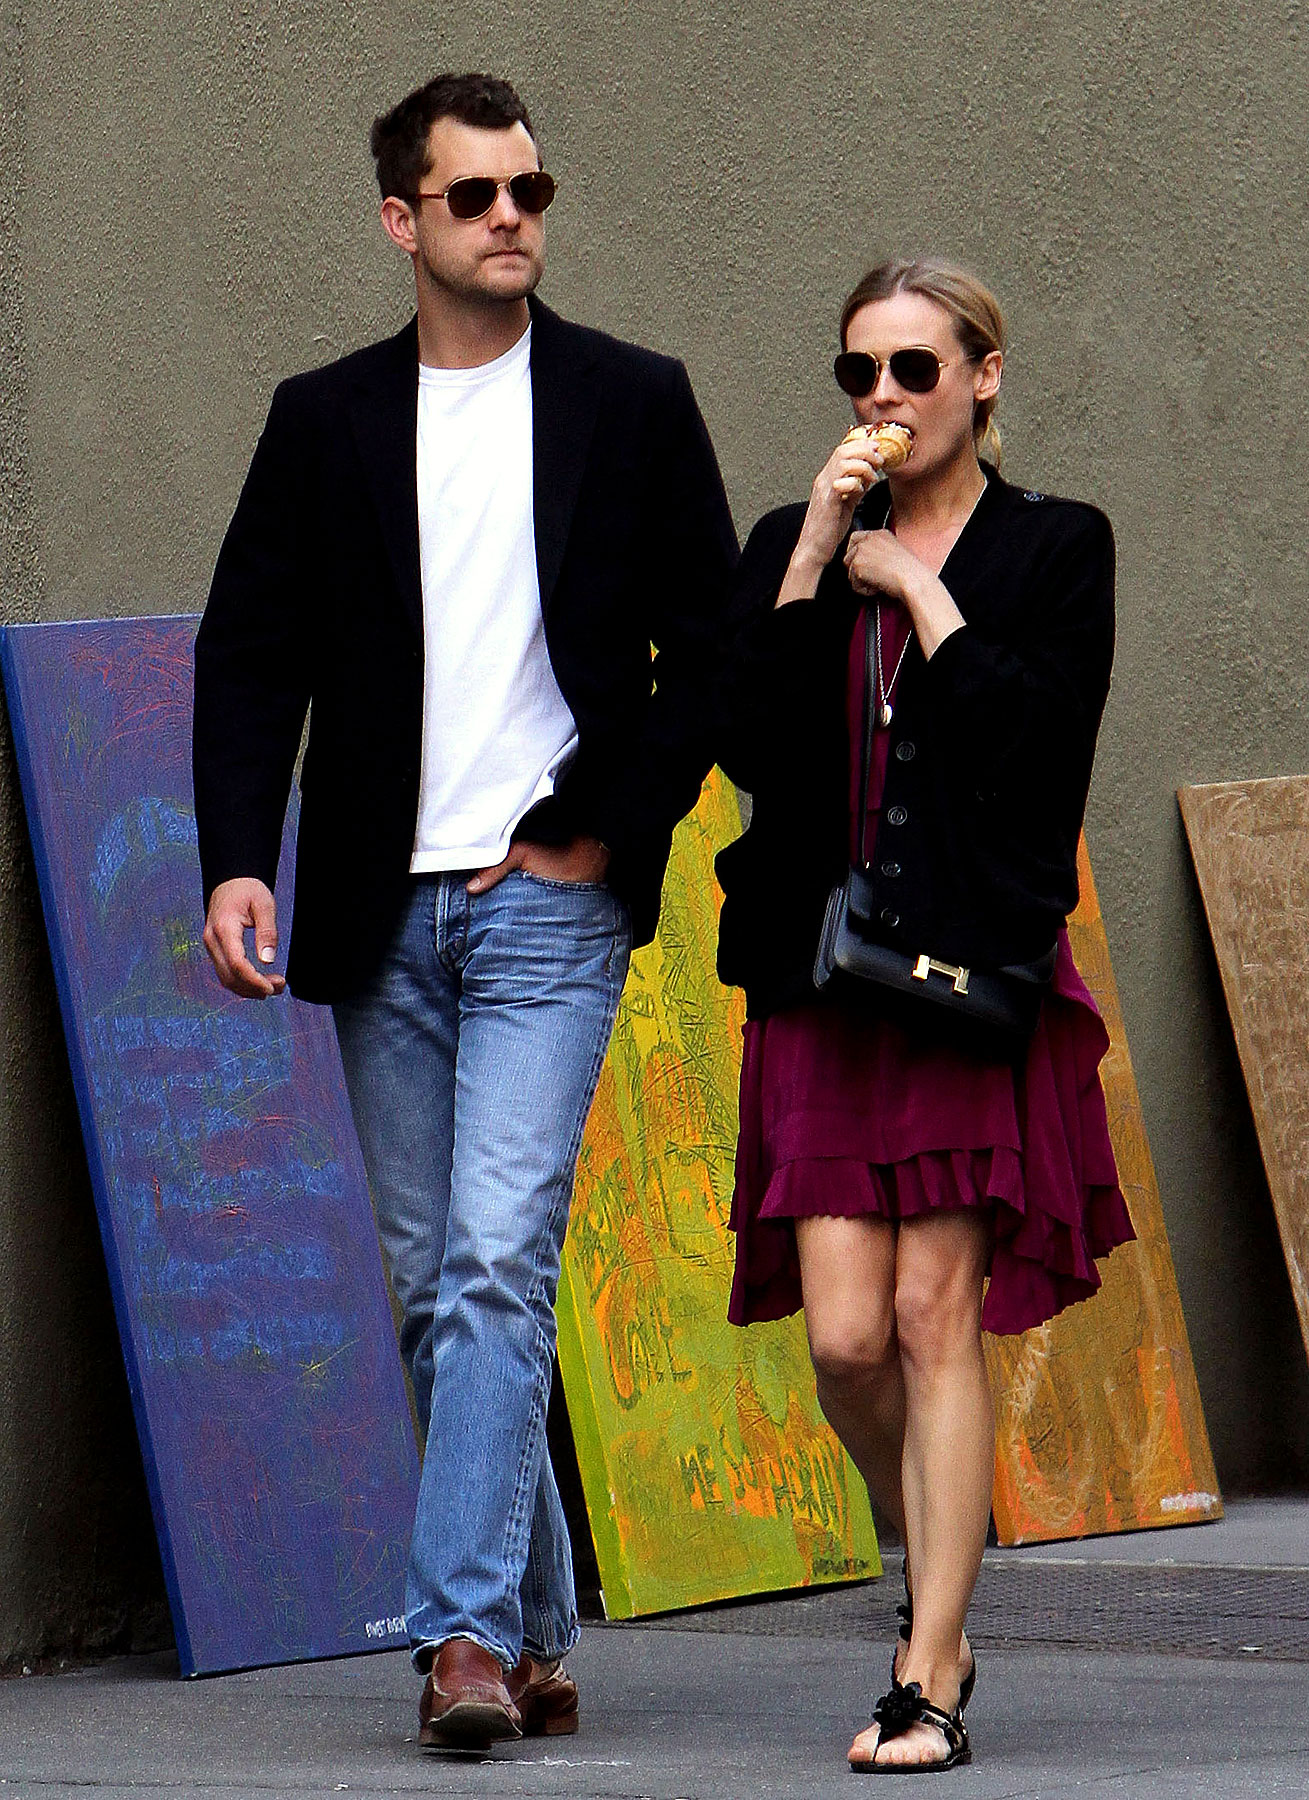 Fashion FTW: Diane Kruger & Joshua Jackson Are Looking Quite Dapper (PHOTOS)